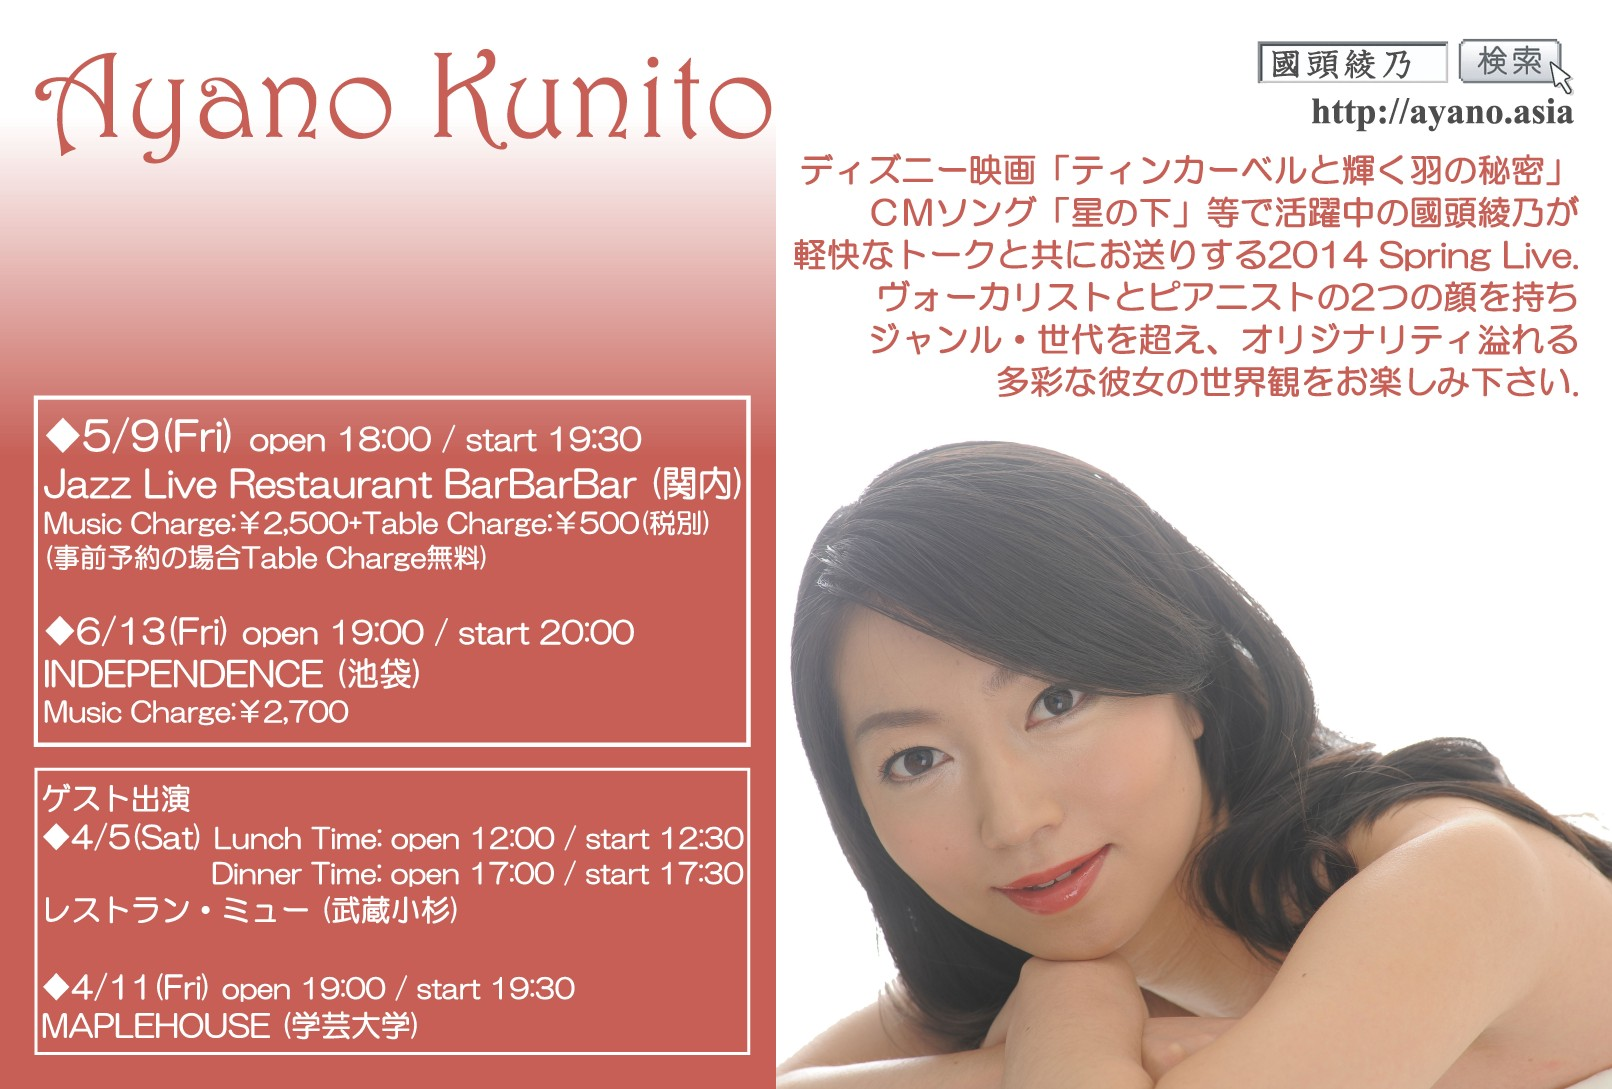 The Flyer of Ayano Live in 2014 Spring